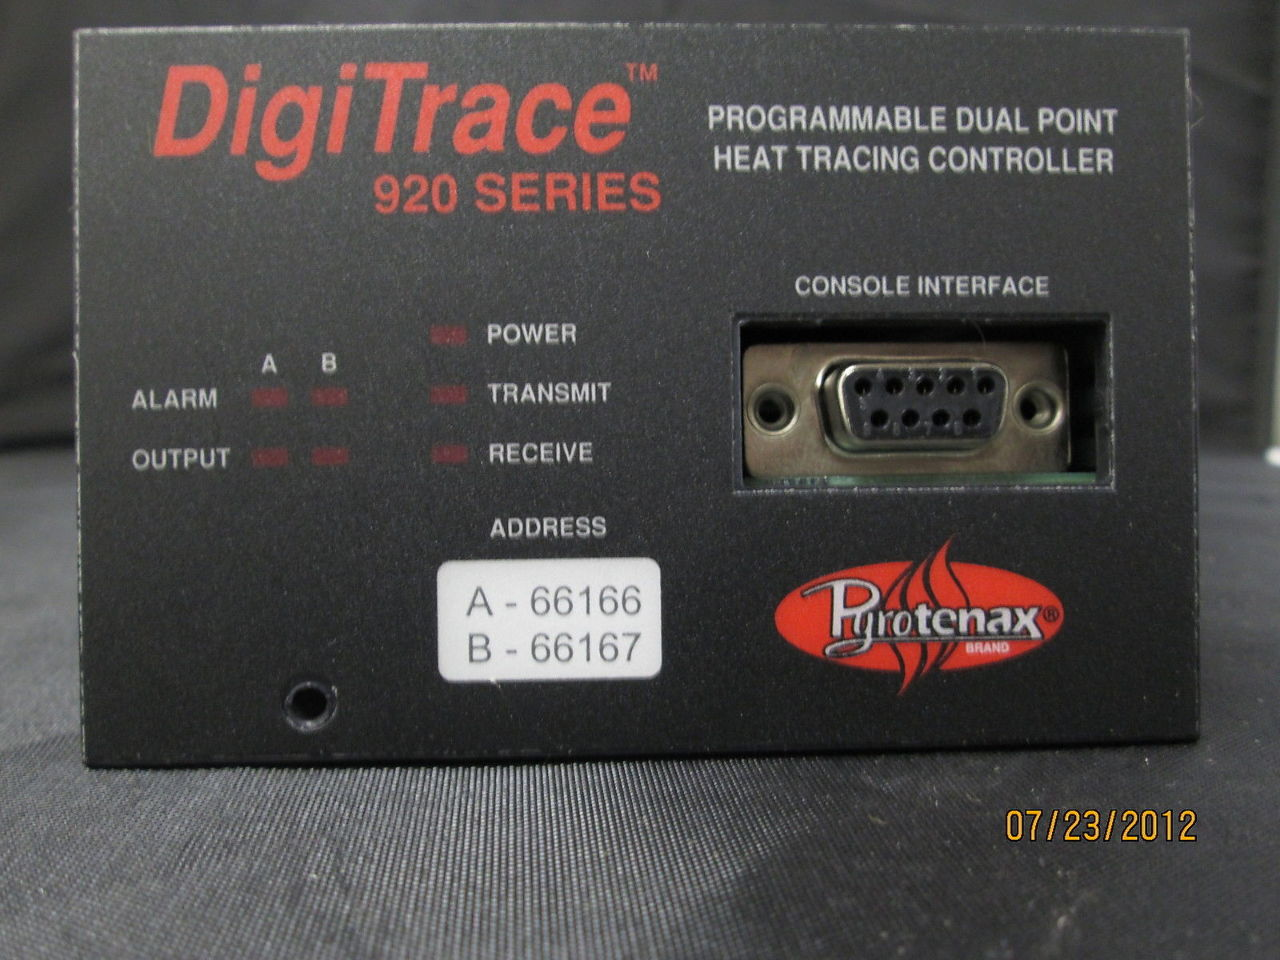 gt11261 pyrotenax digitrace heat trace controller 920 920htc new best 2223 heat trace thermostat, industrial chillers, ceiling heat trace controller wiring diagram at edmiracle.co